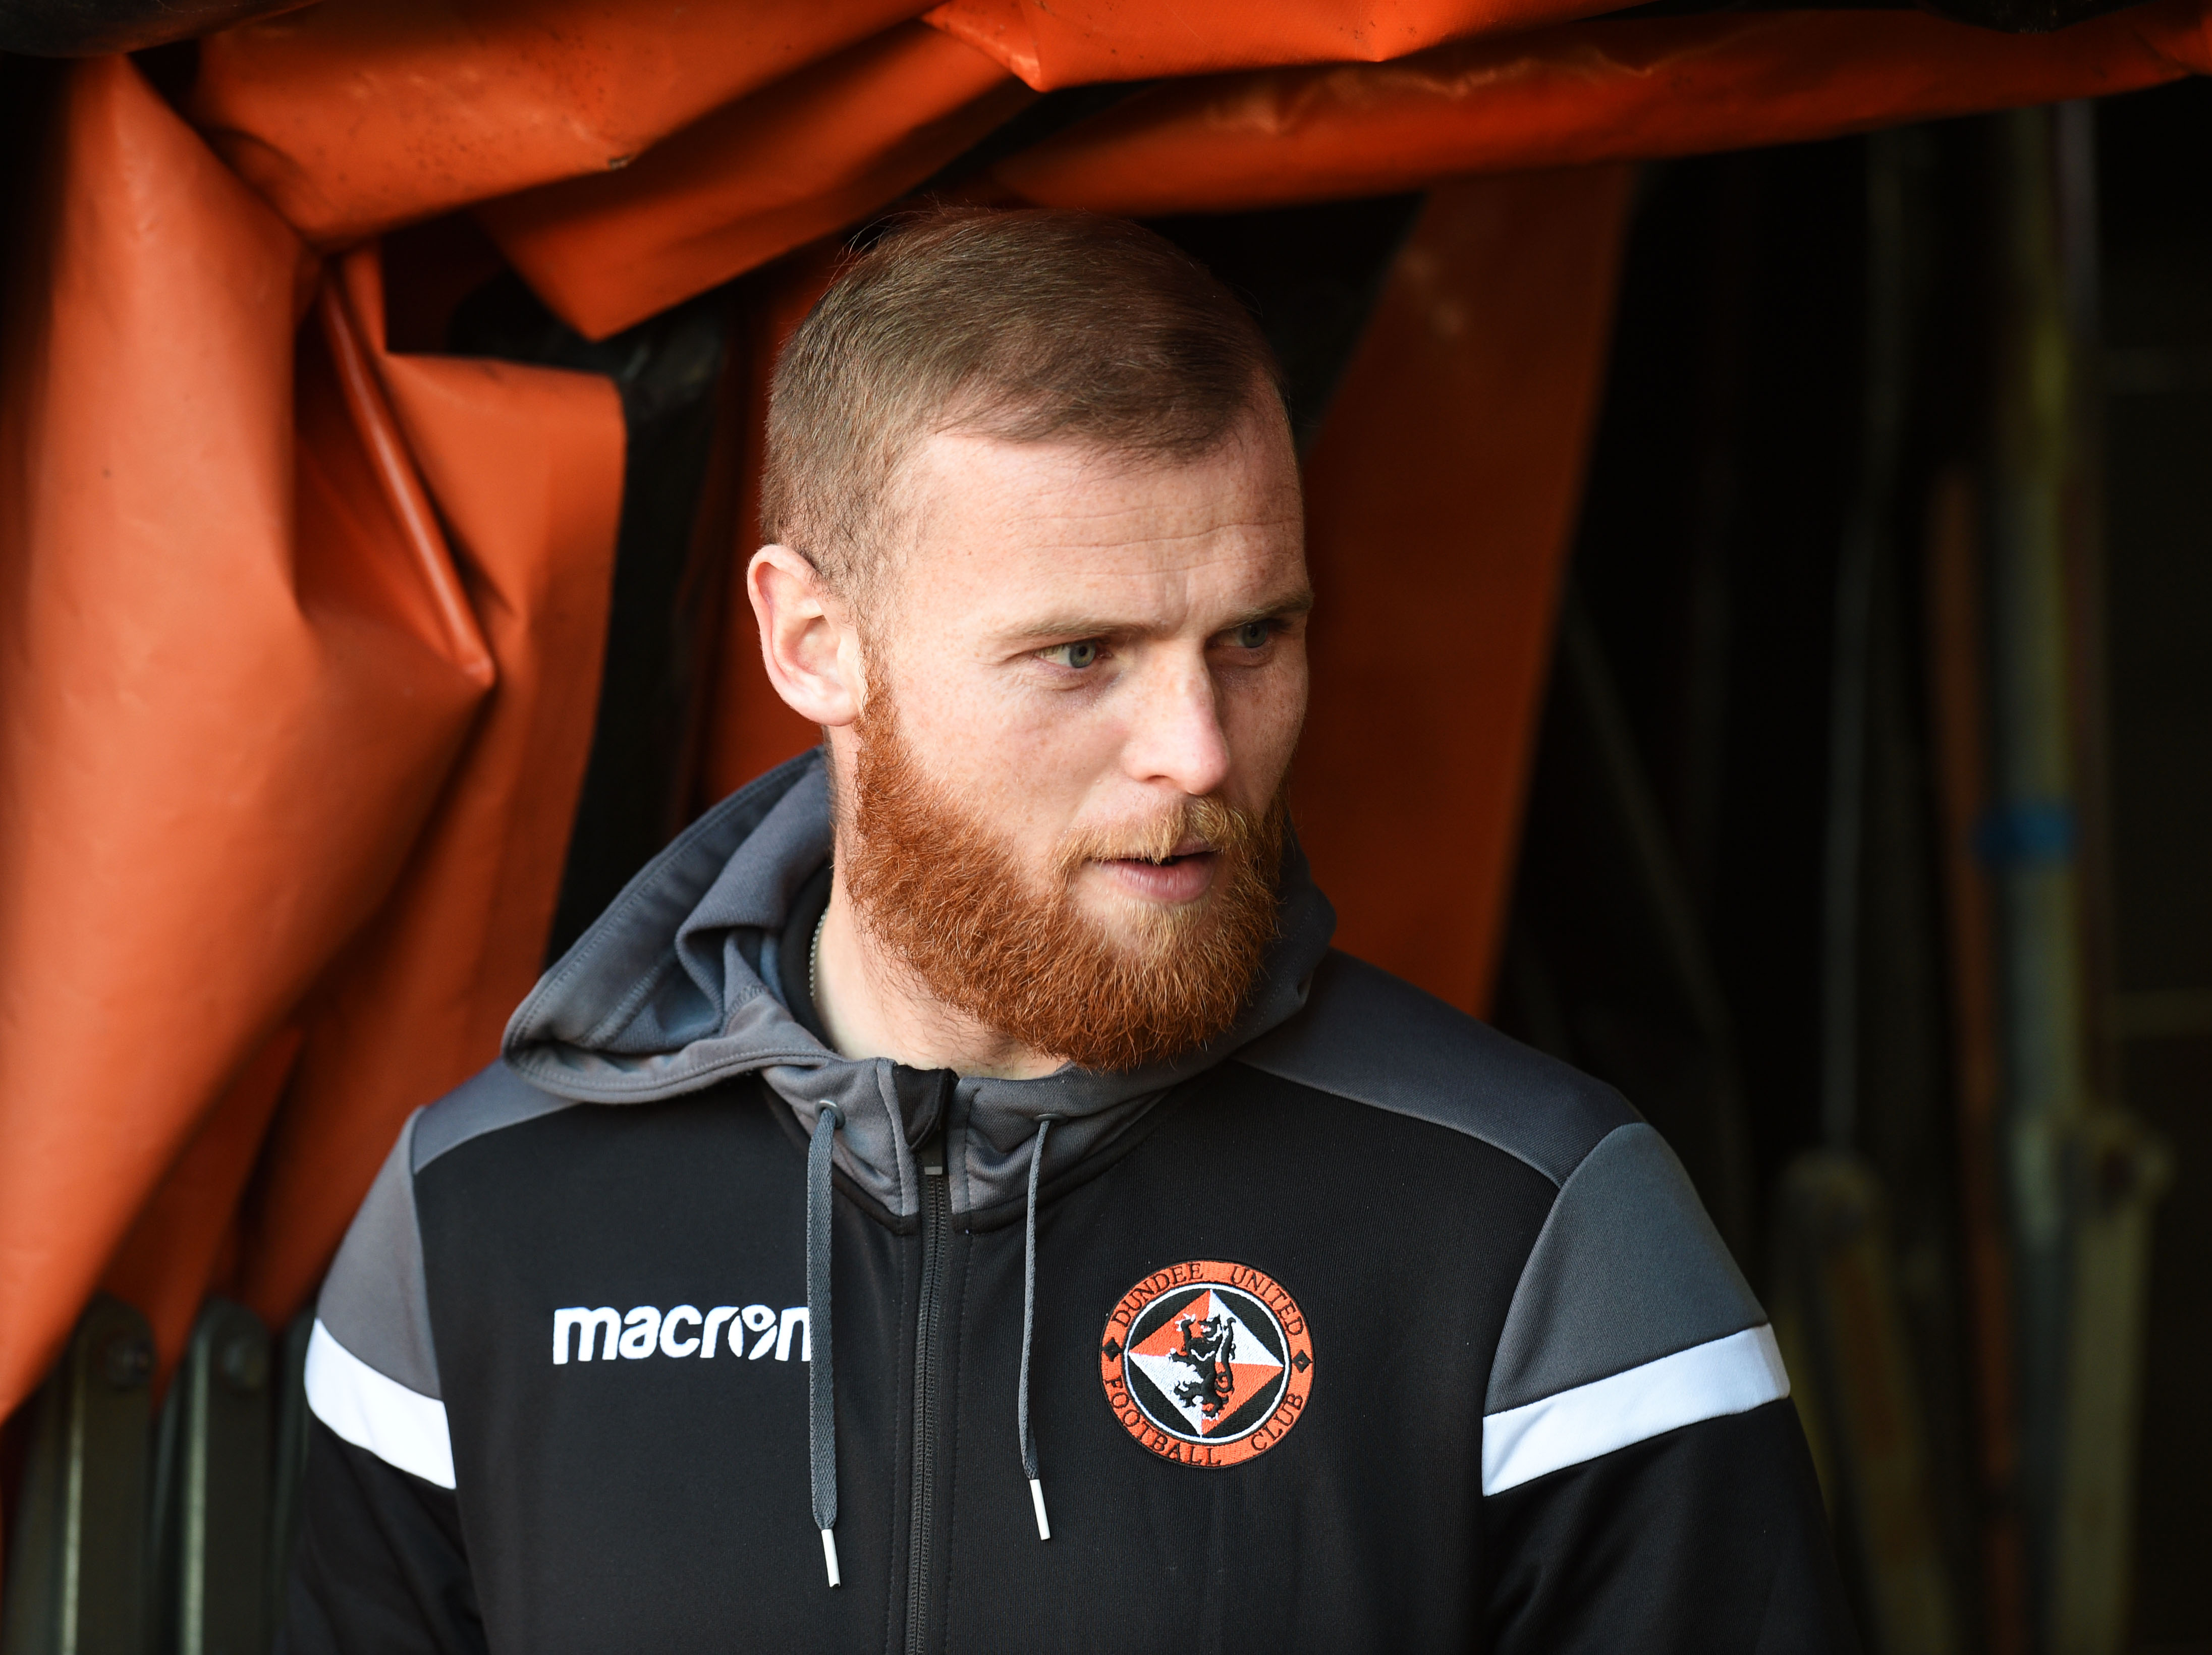 Mark Connolly is hoping for international recognition.